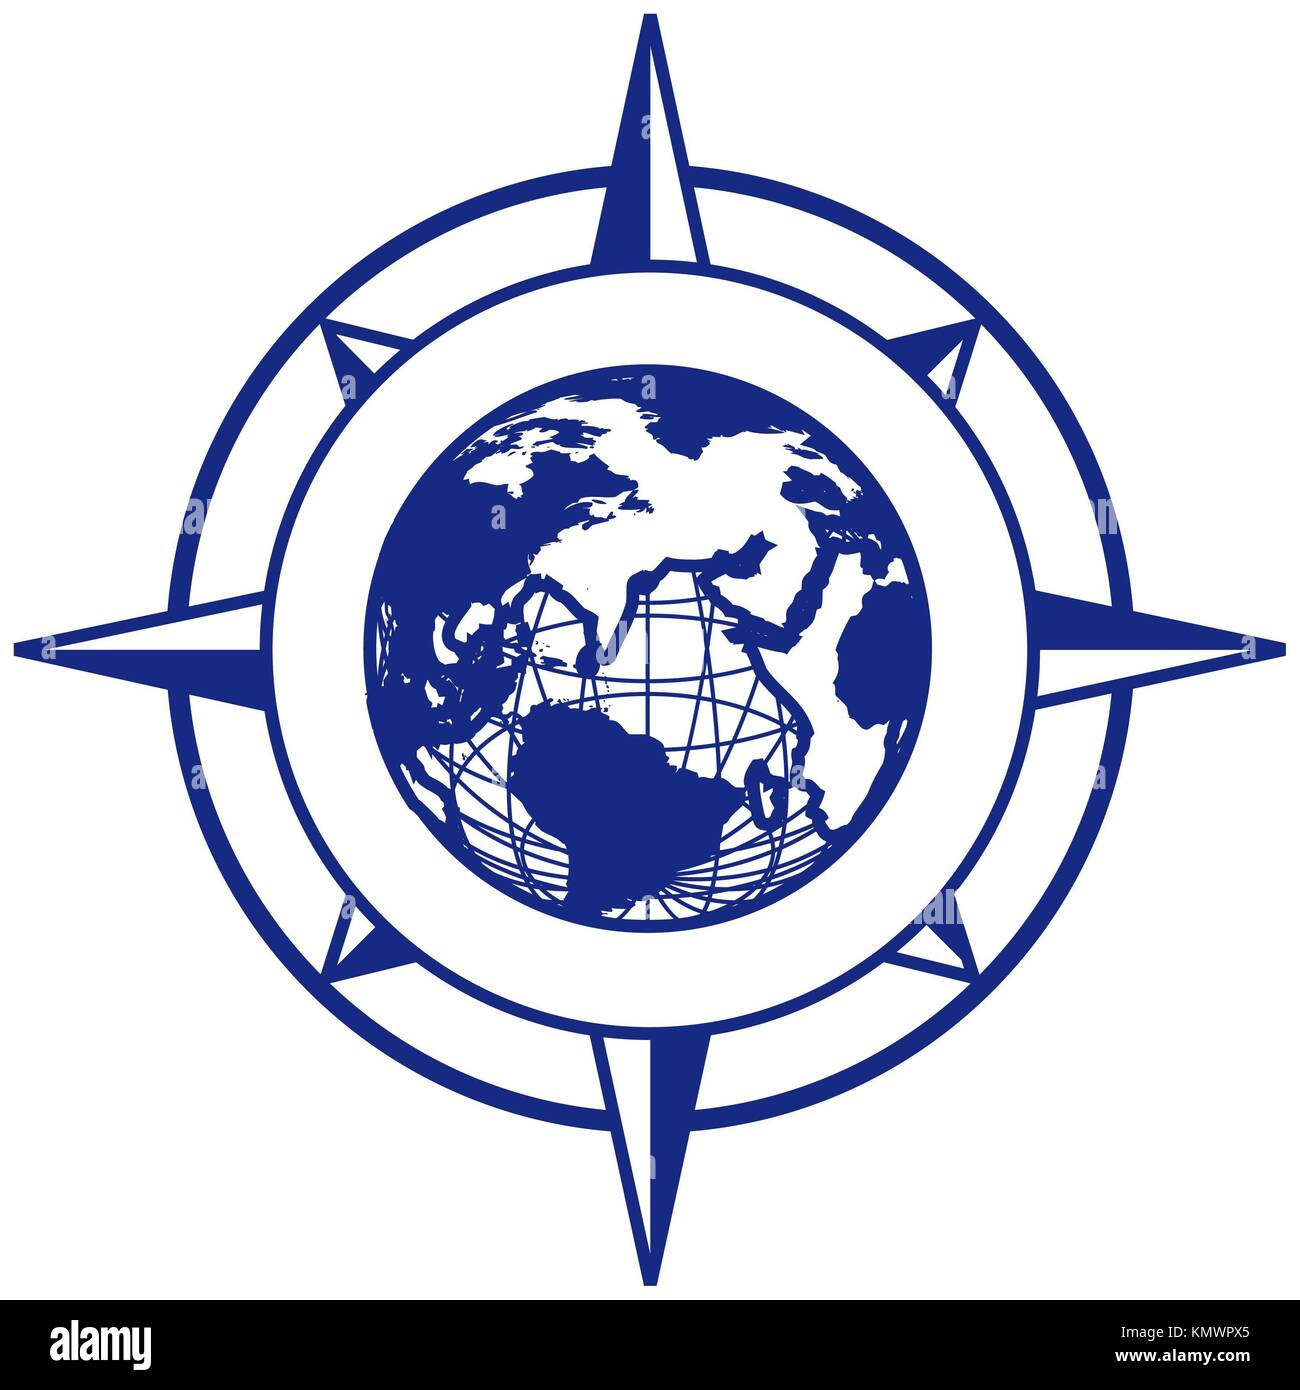 Vignette Earth Stock Photos Images Alamy Mechanical Electrical Plan Vectorial With Wind Rose And Executed In Blue Color No Gradients